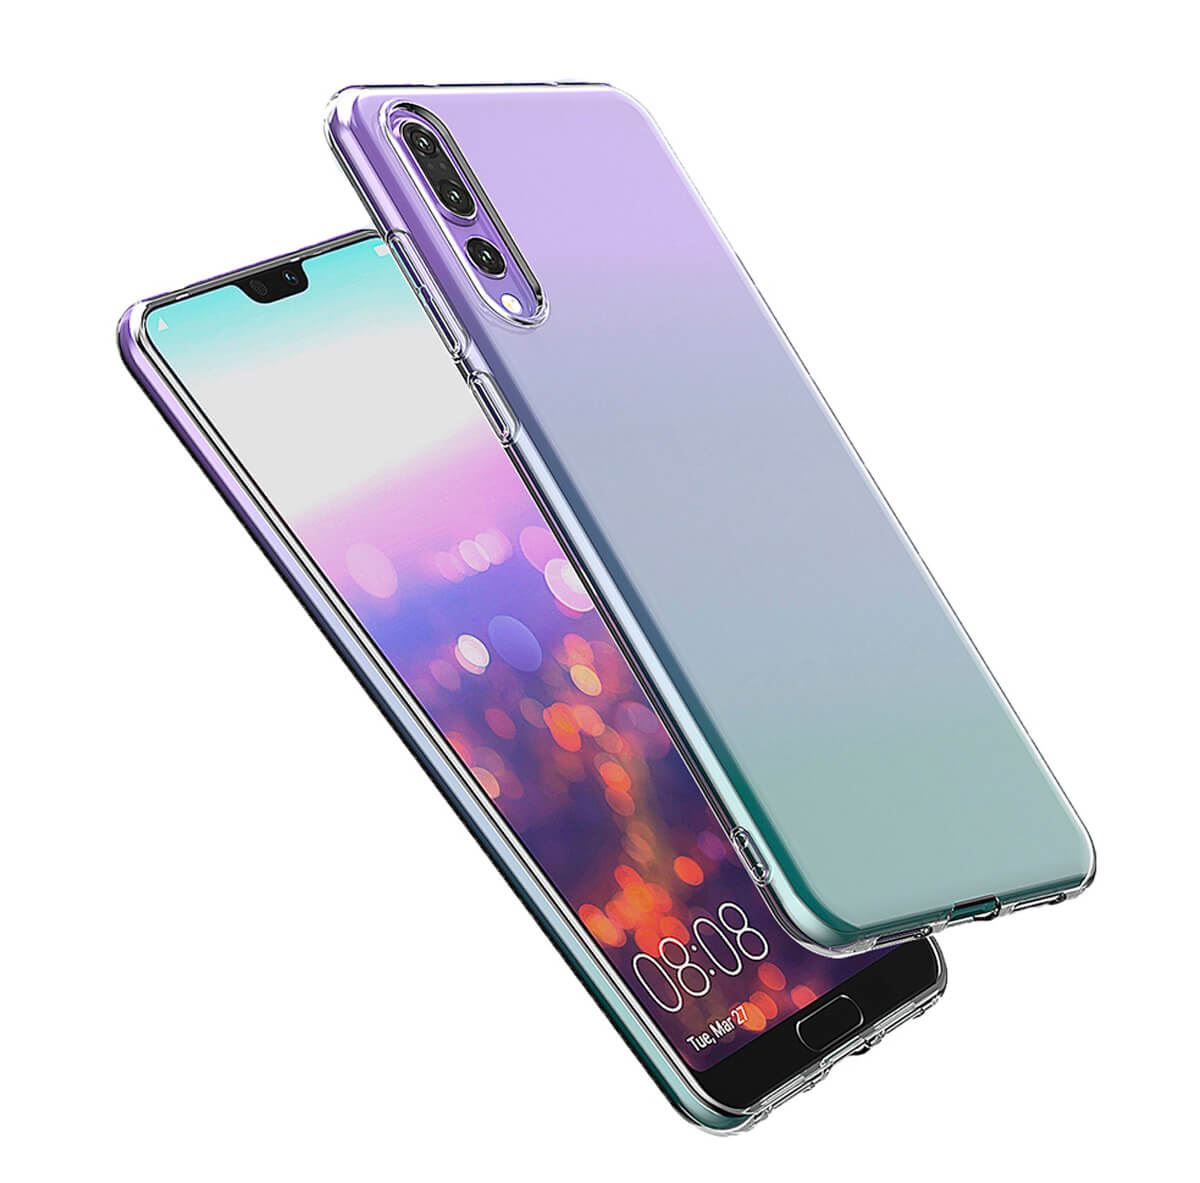 Shockproof-Silicone-Protective-Clear-Gel-Cover-Case-For-Huawei-P20-Pro-P-Smart thumbnail 16